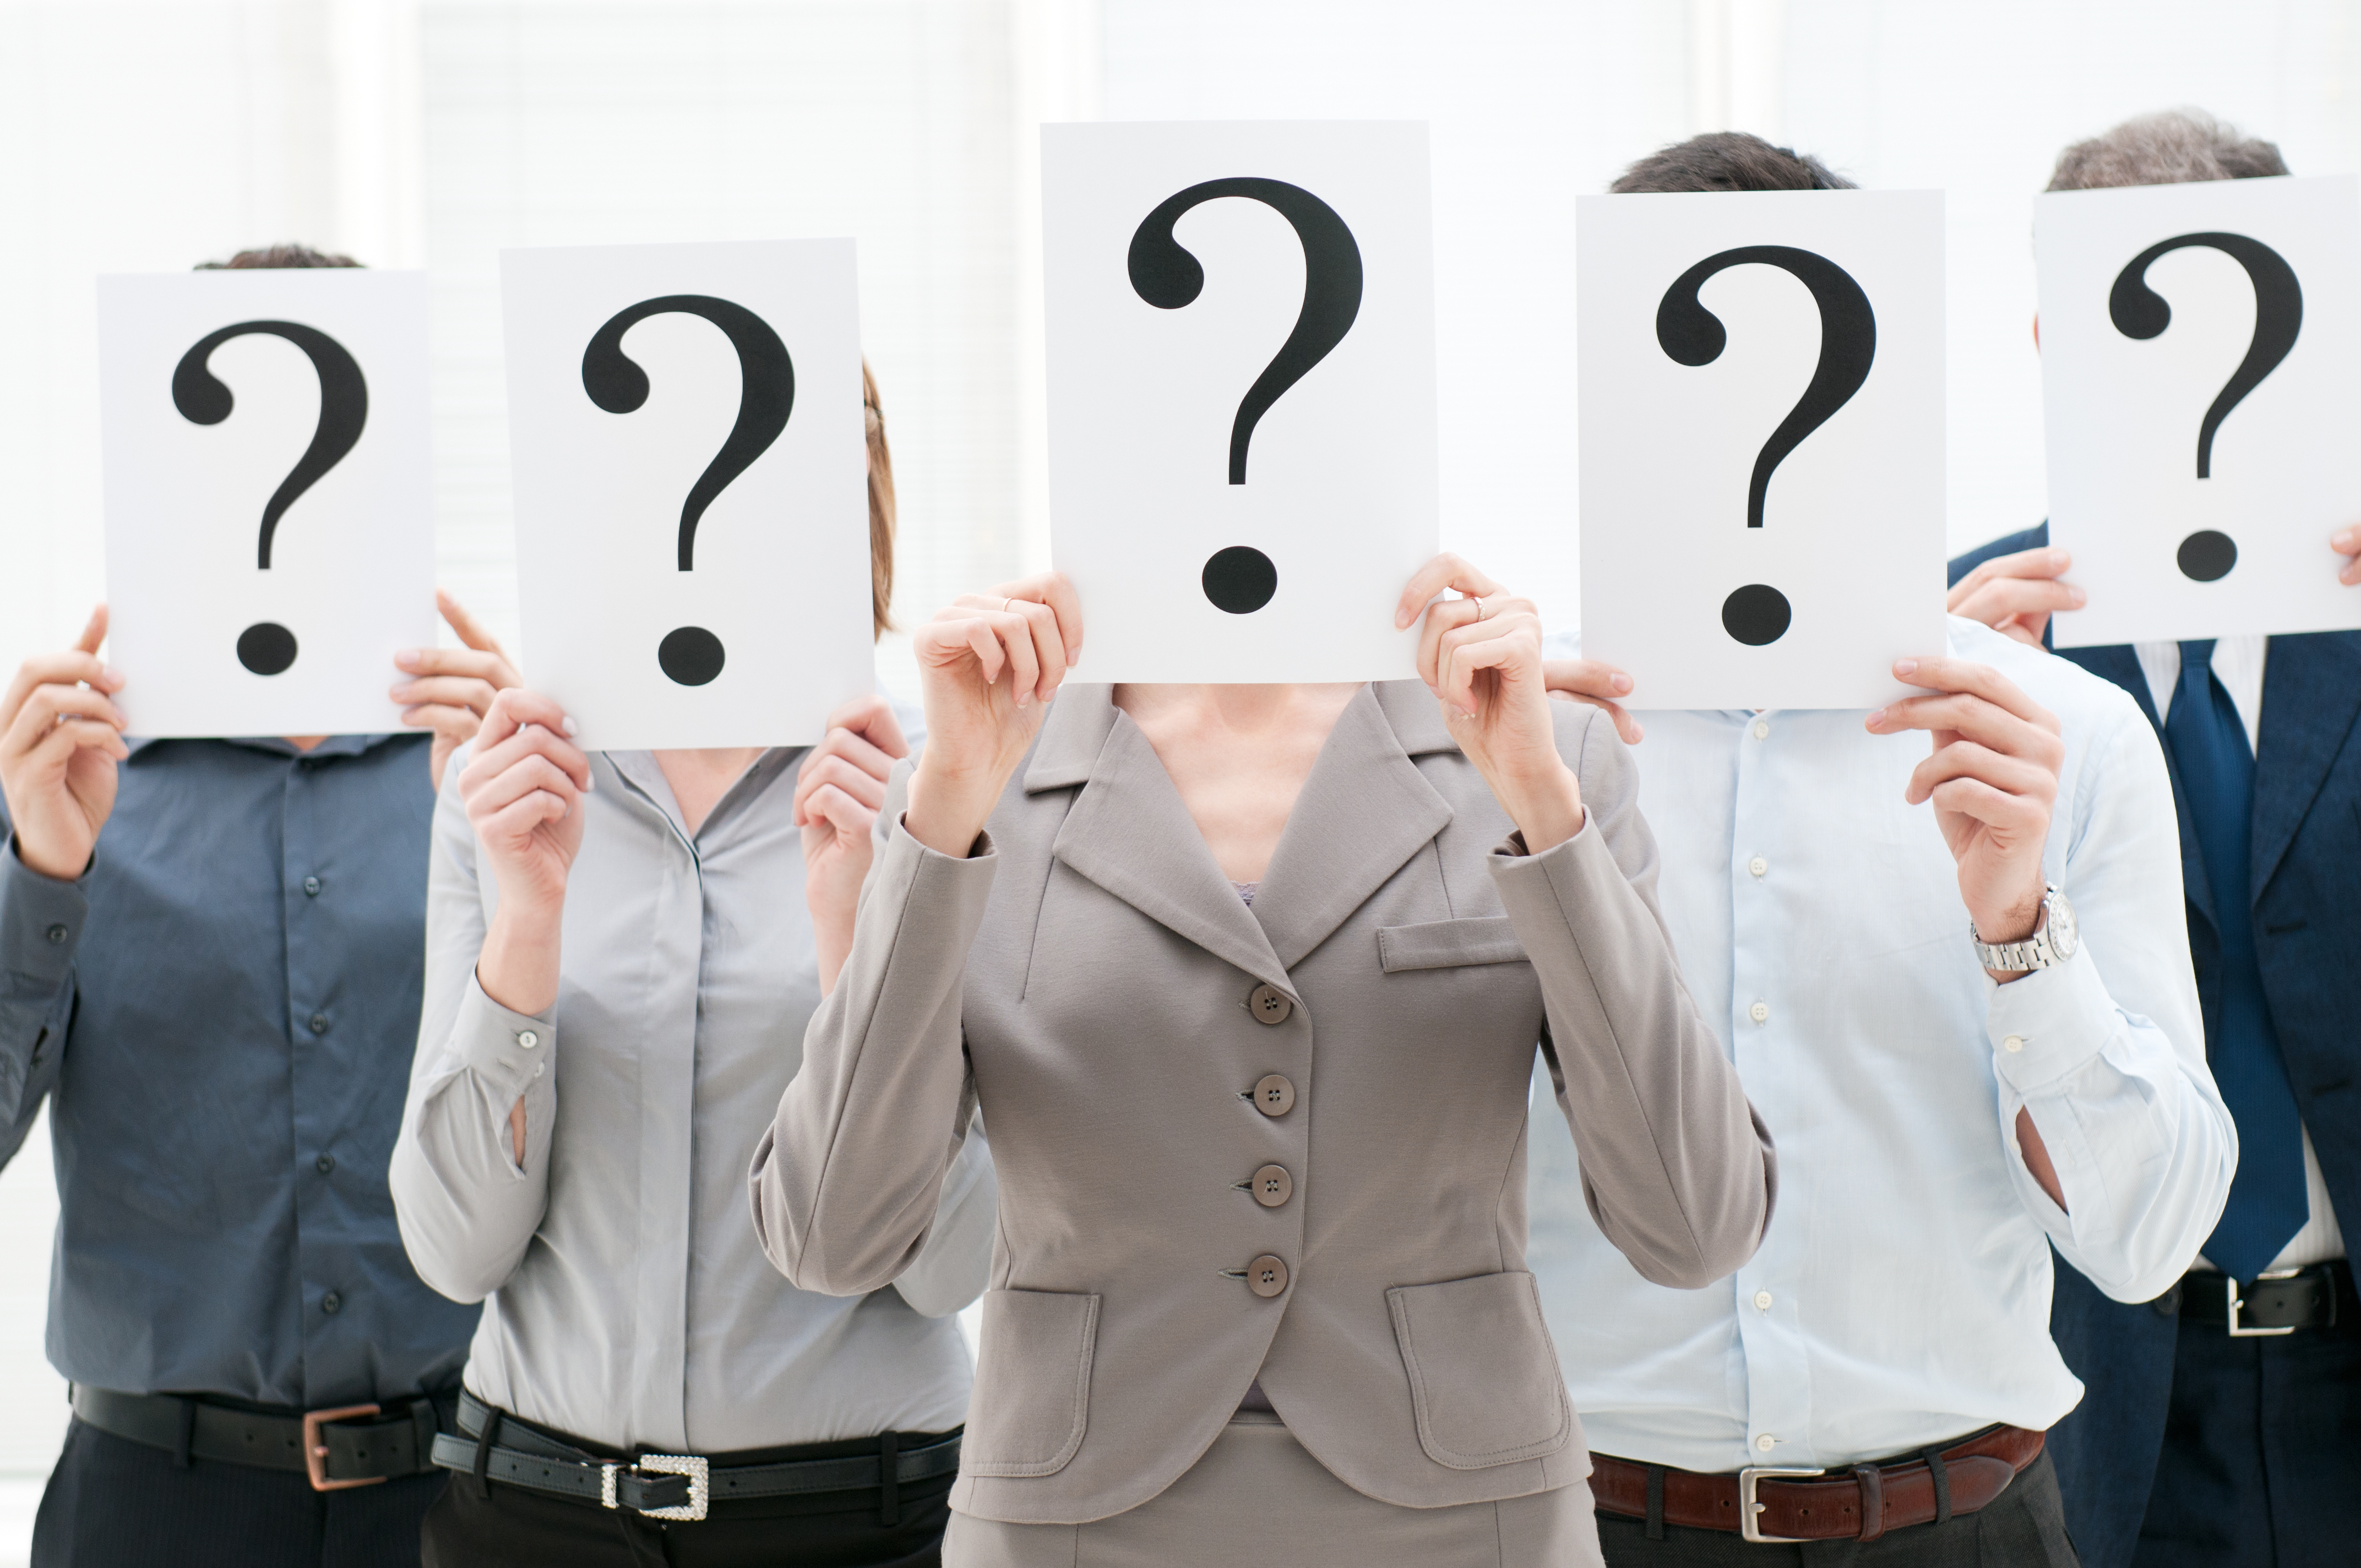 Business team hiding their faces behind question mark signs at office.